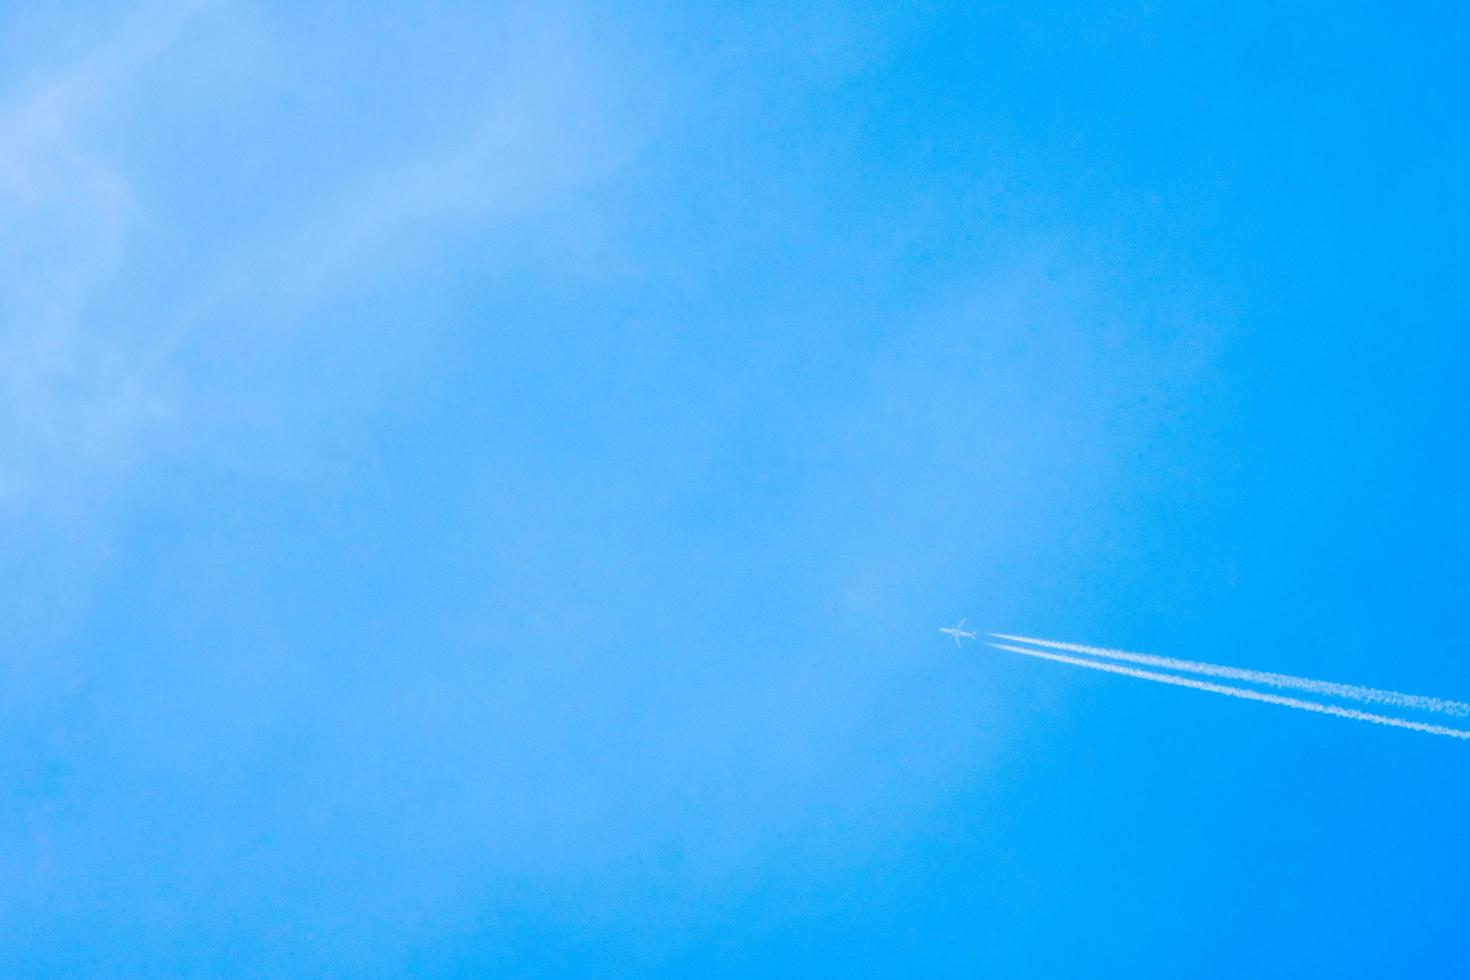 Airplane flying in the clear blue sky with white trail along the route. Jet with contrail in high speed photo